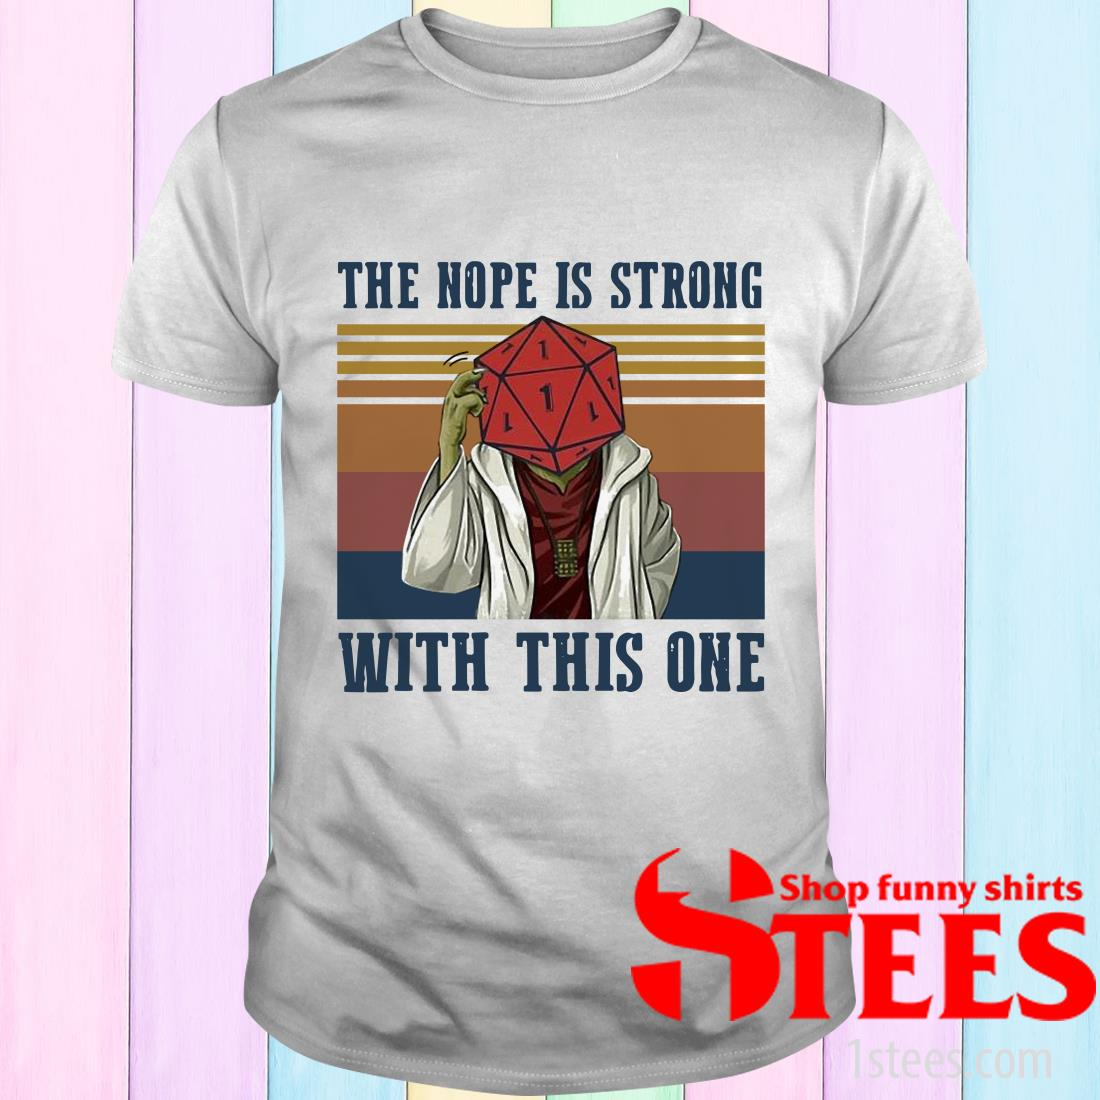 Vintage Star Wars Yoga The Nope Is Strong With This One T-Shirt